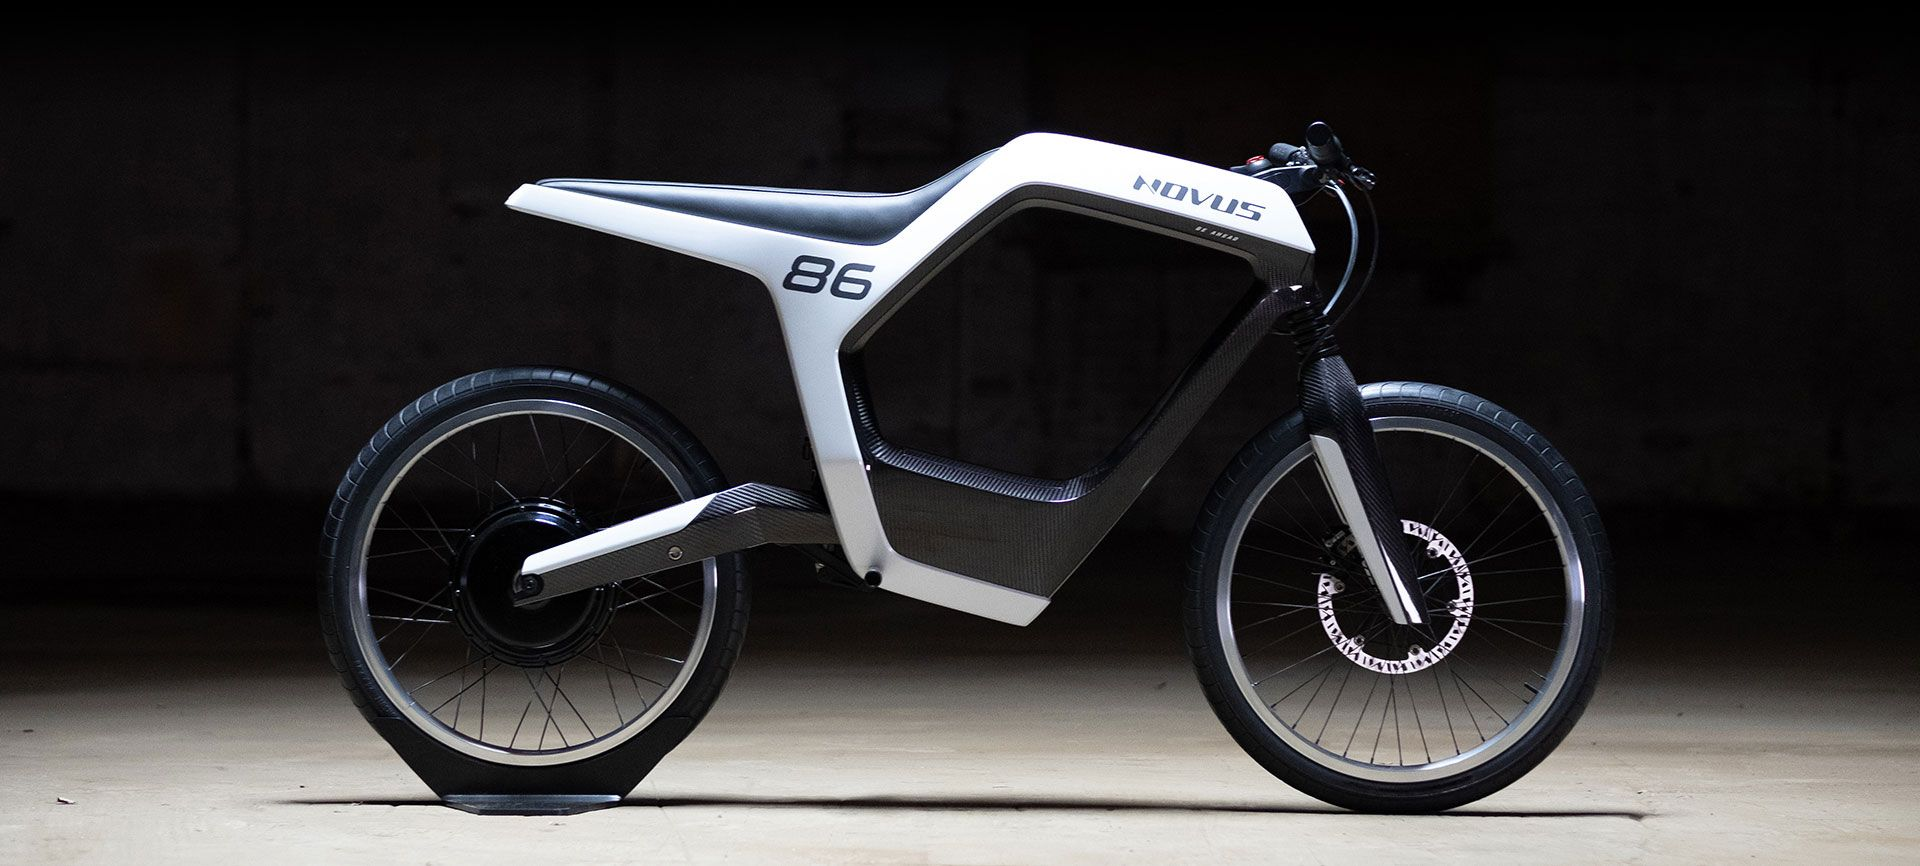 Novus Electric Motorcycle On Ces 2019 Electric Motorcycle